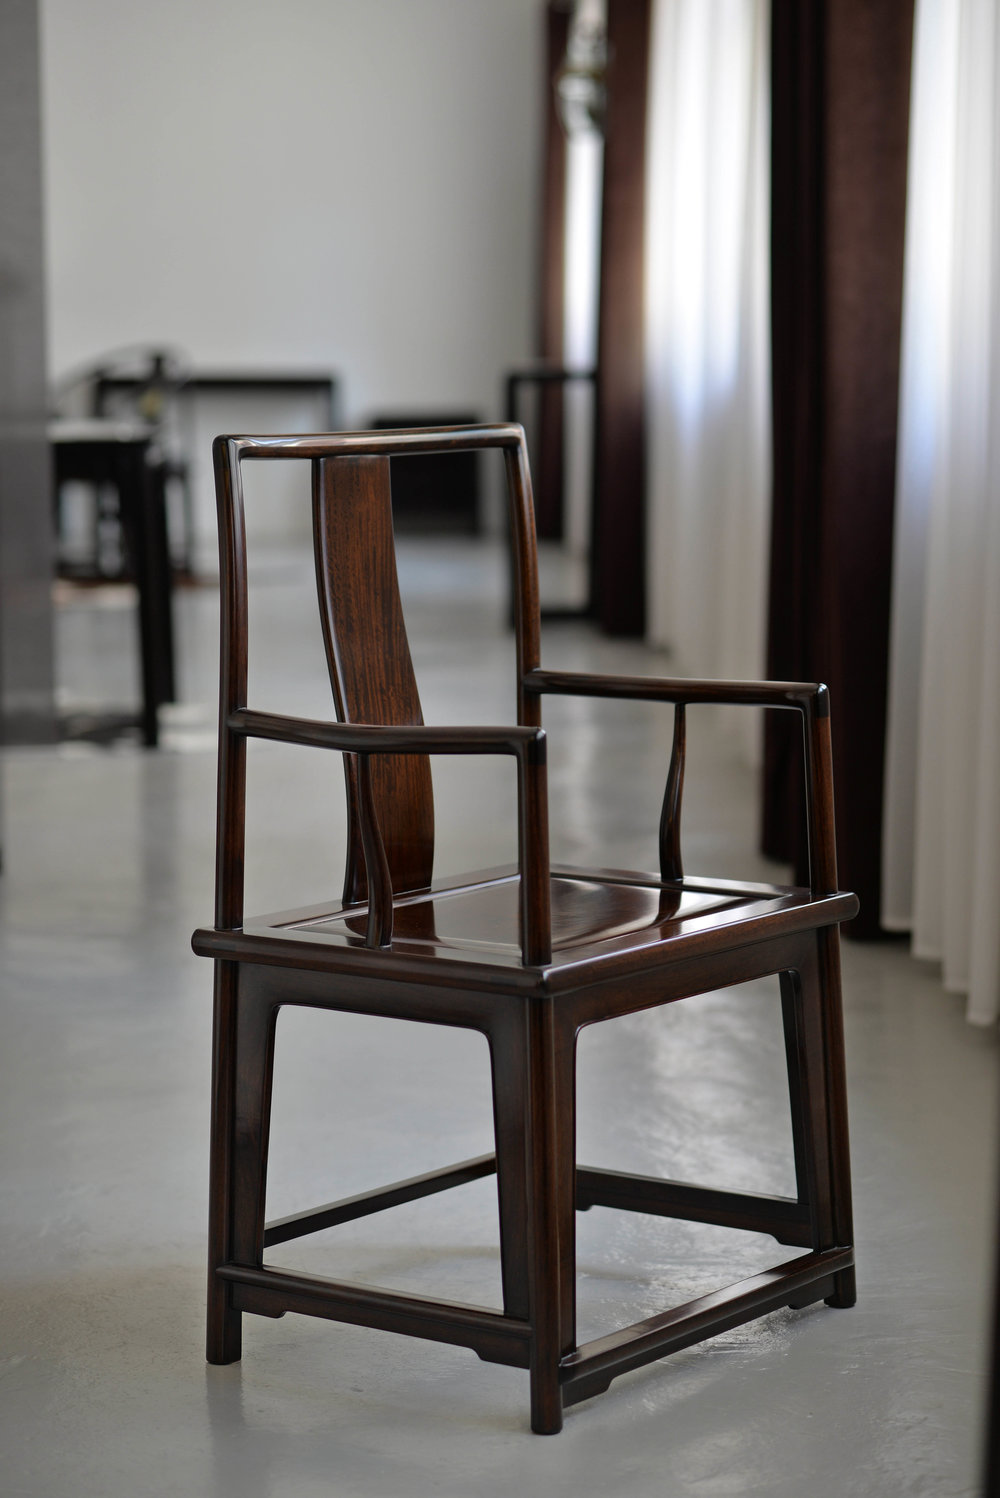 ....chinese ming style furniture | armchair : ch 33..中国明式家具 | 南官帽椅 :CH 33....